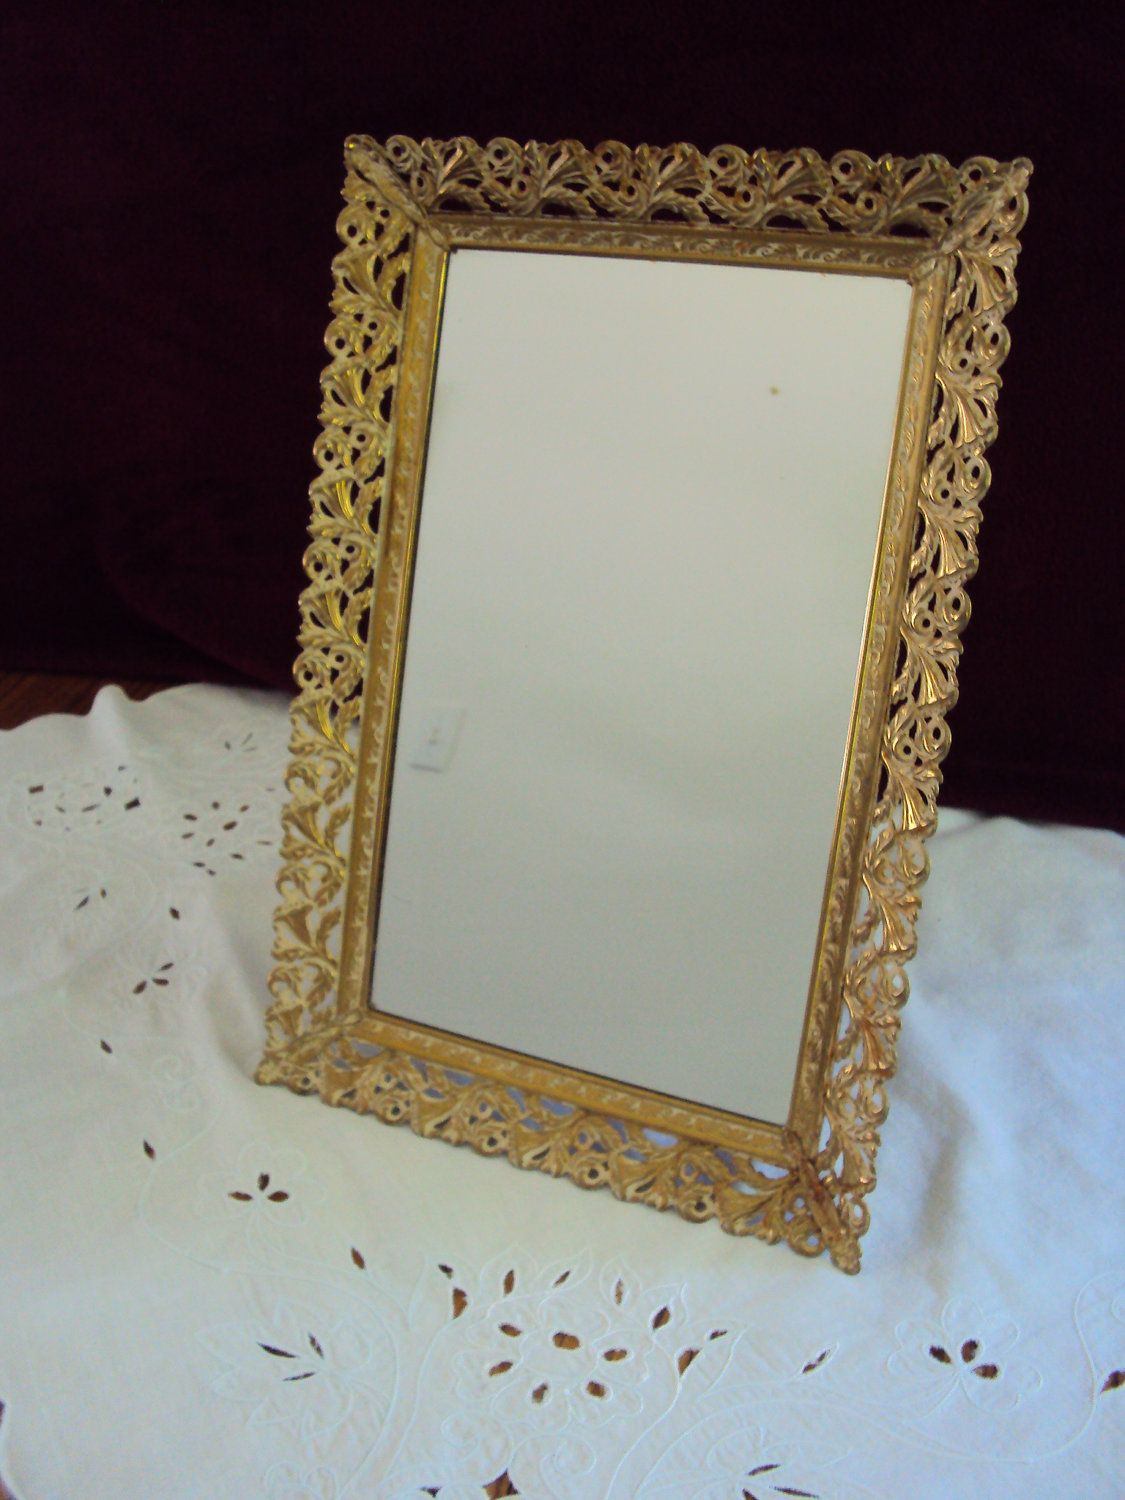 Vintage Rectangular Brass Metal Vanity Mirror Tray or